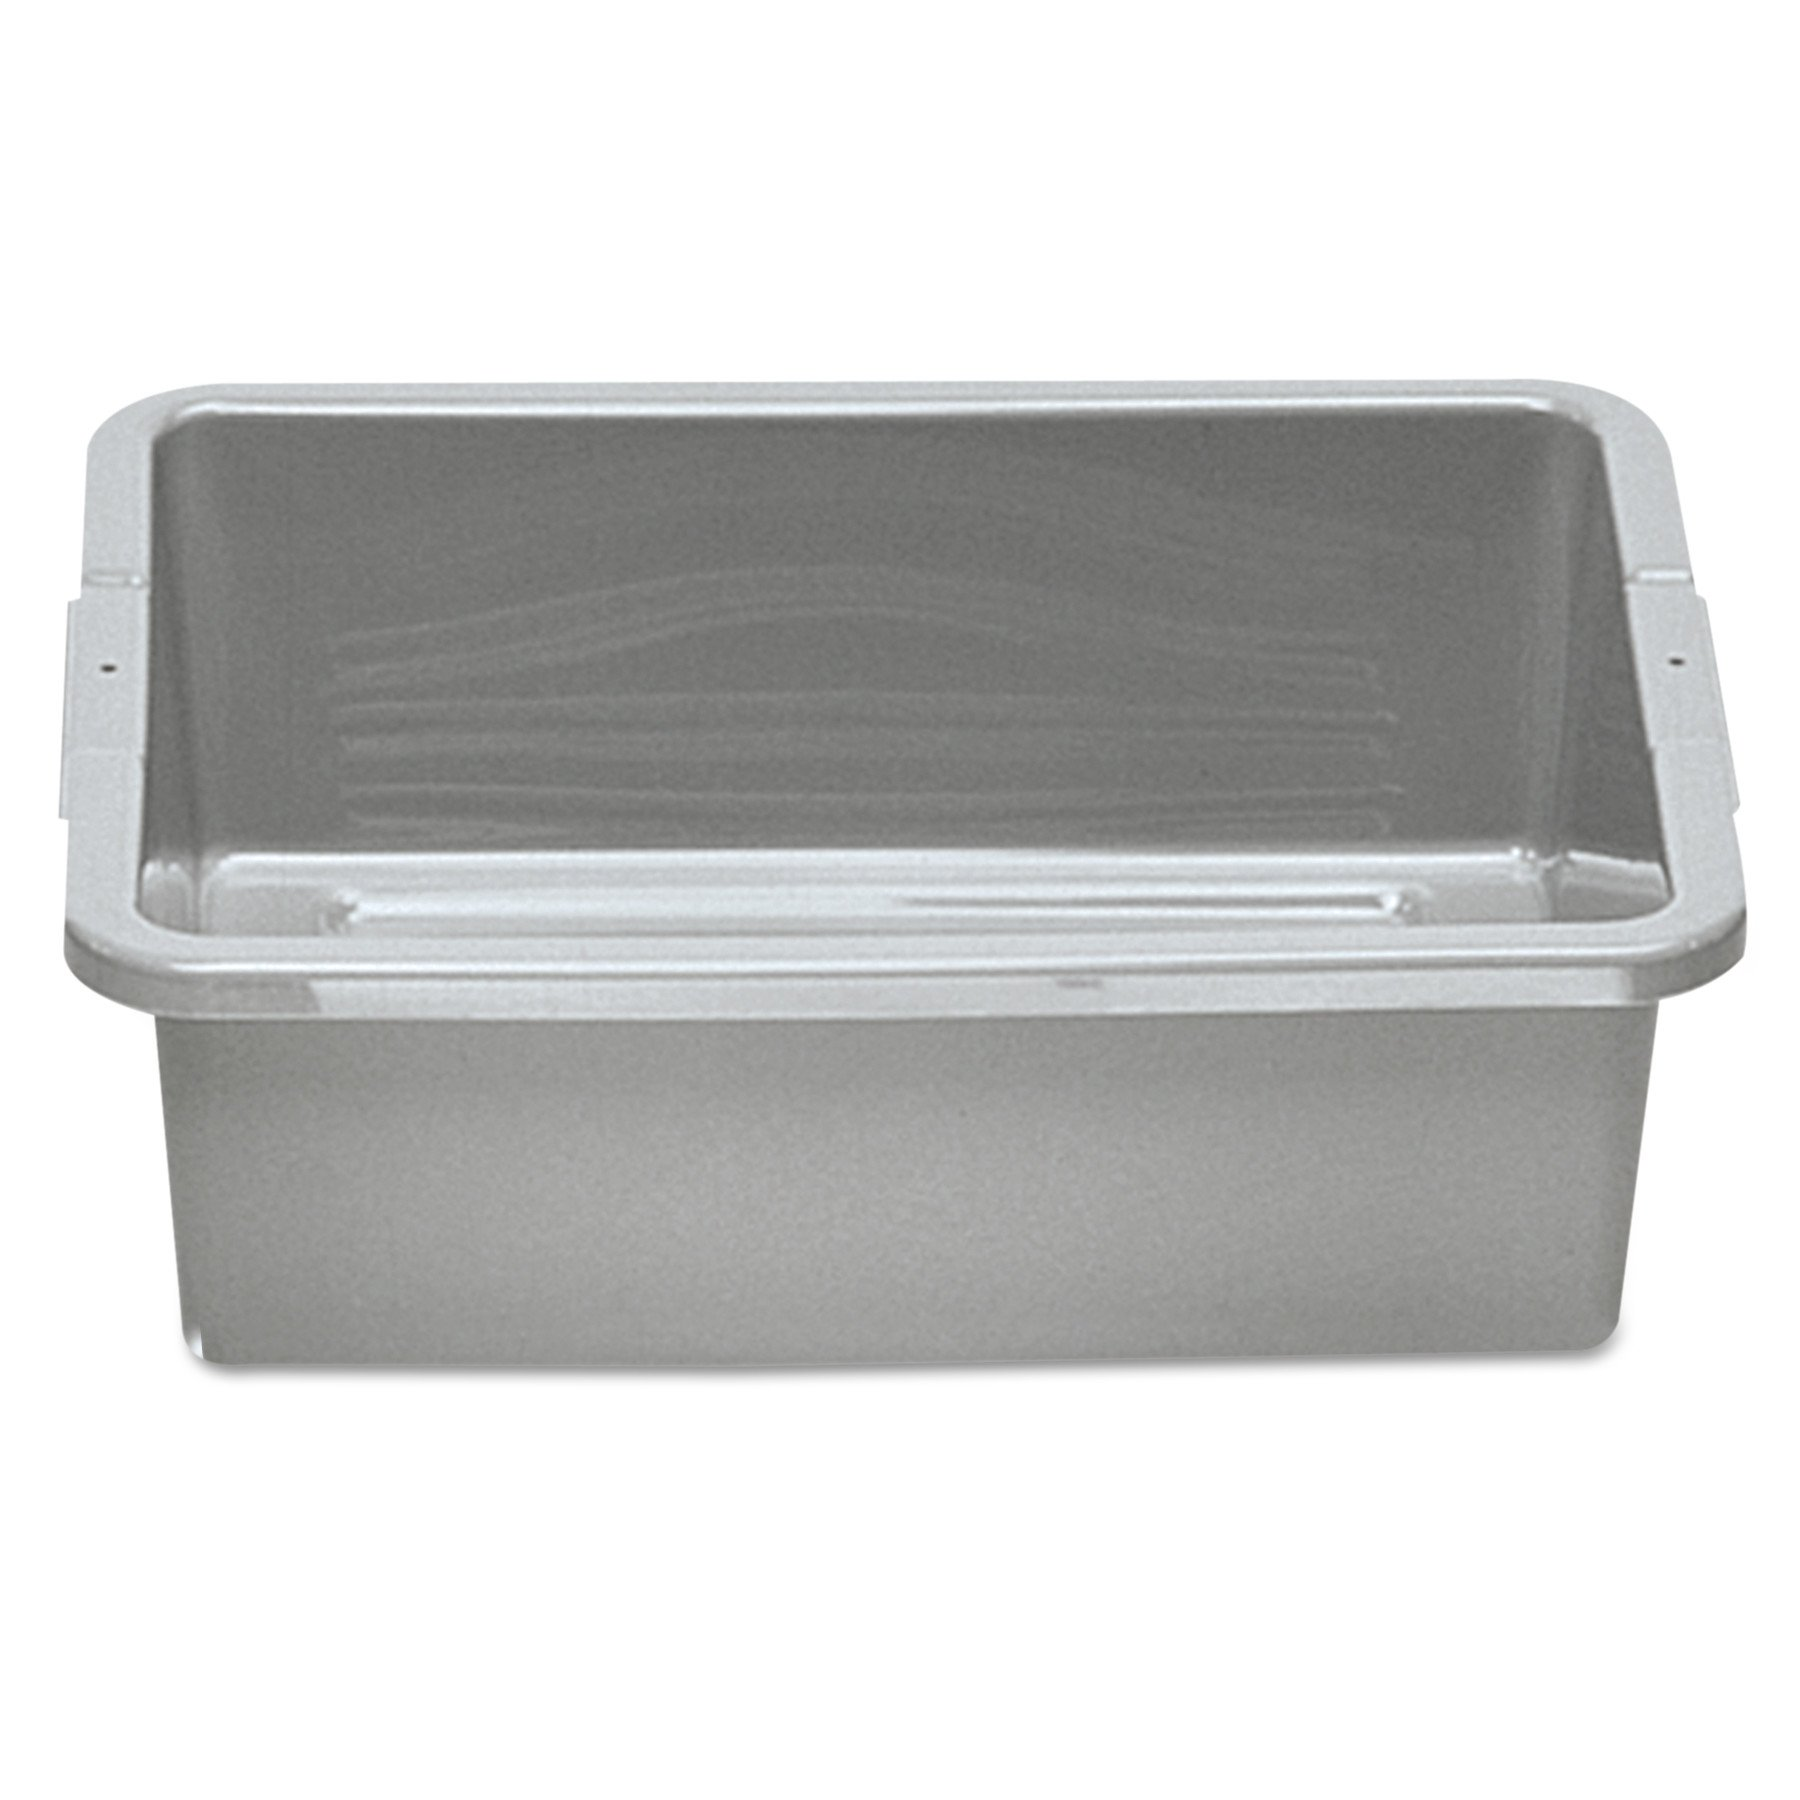 Rubbermaid Commercial 335192GRACT Bus/Utility Box, 7.125gal, Gray (Case of 100)